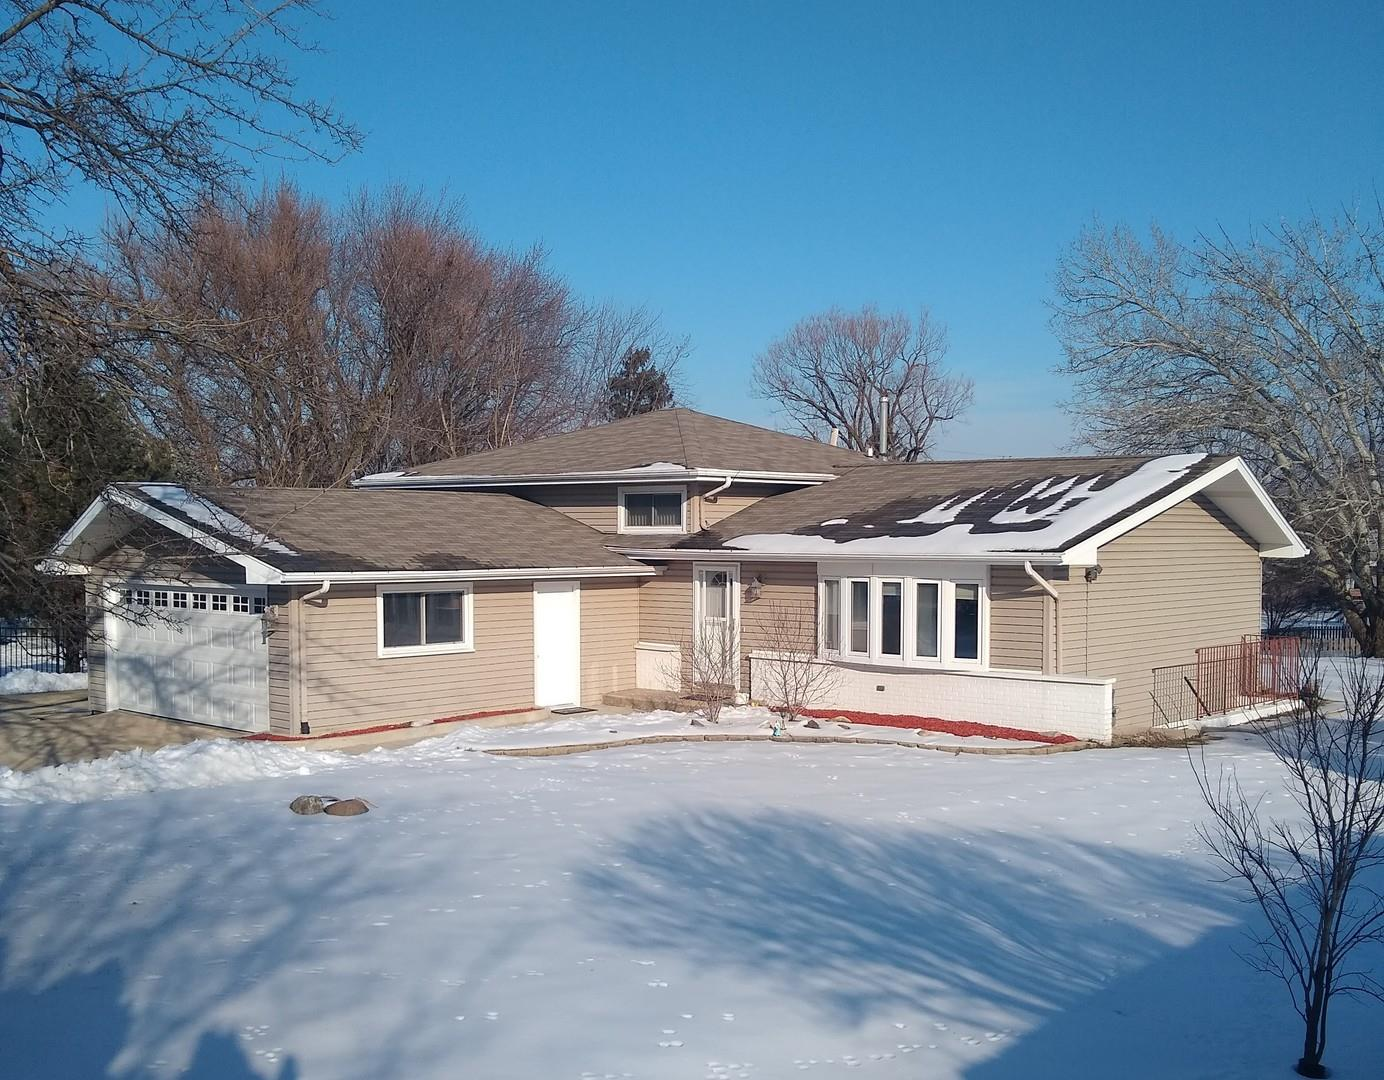 1217 S Roselle Road, Schaumburg, IL 60193 - #: 10943517